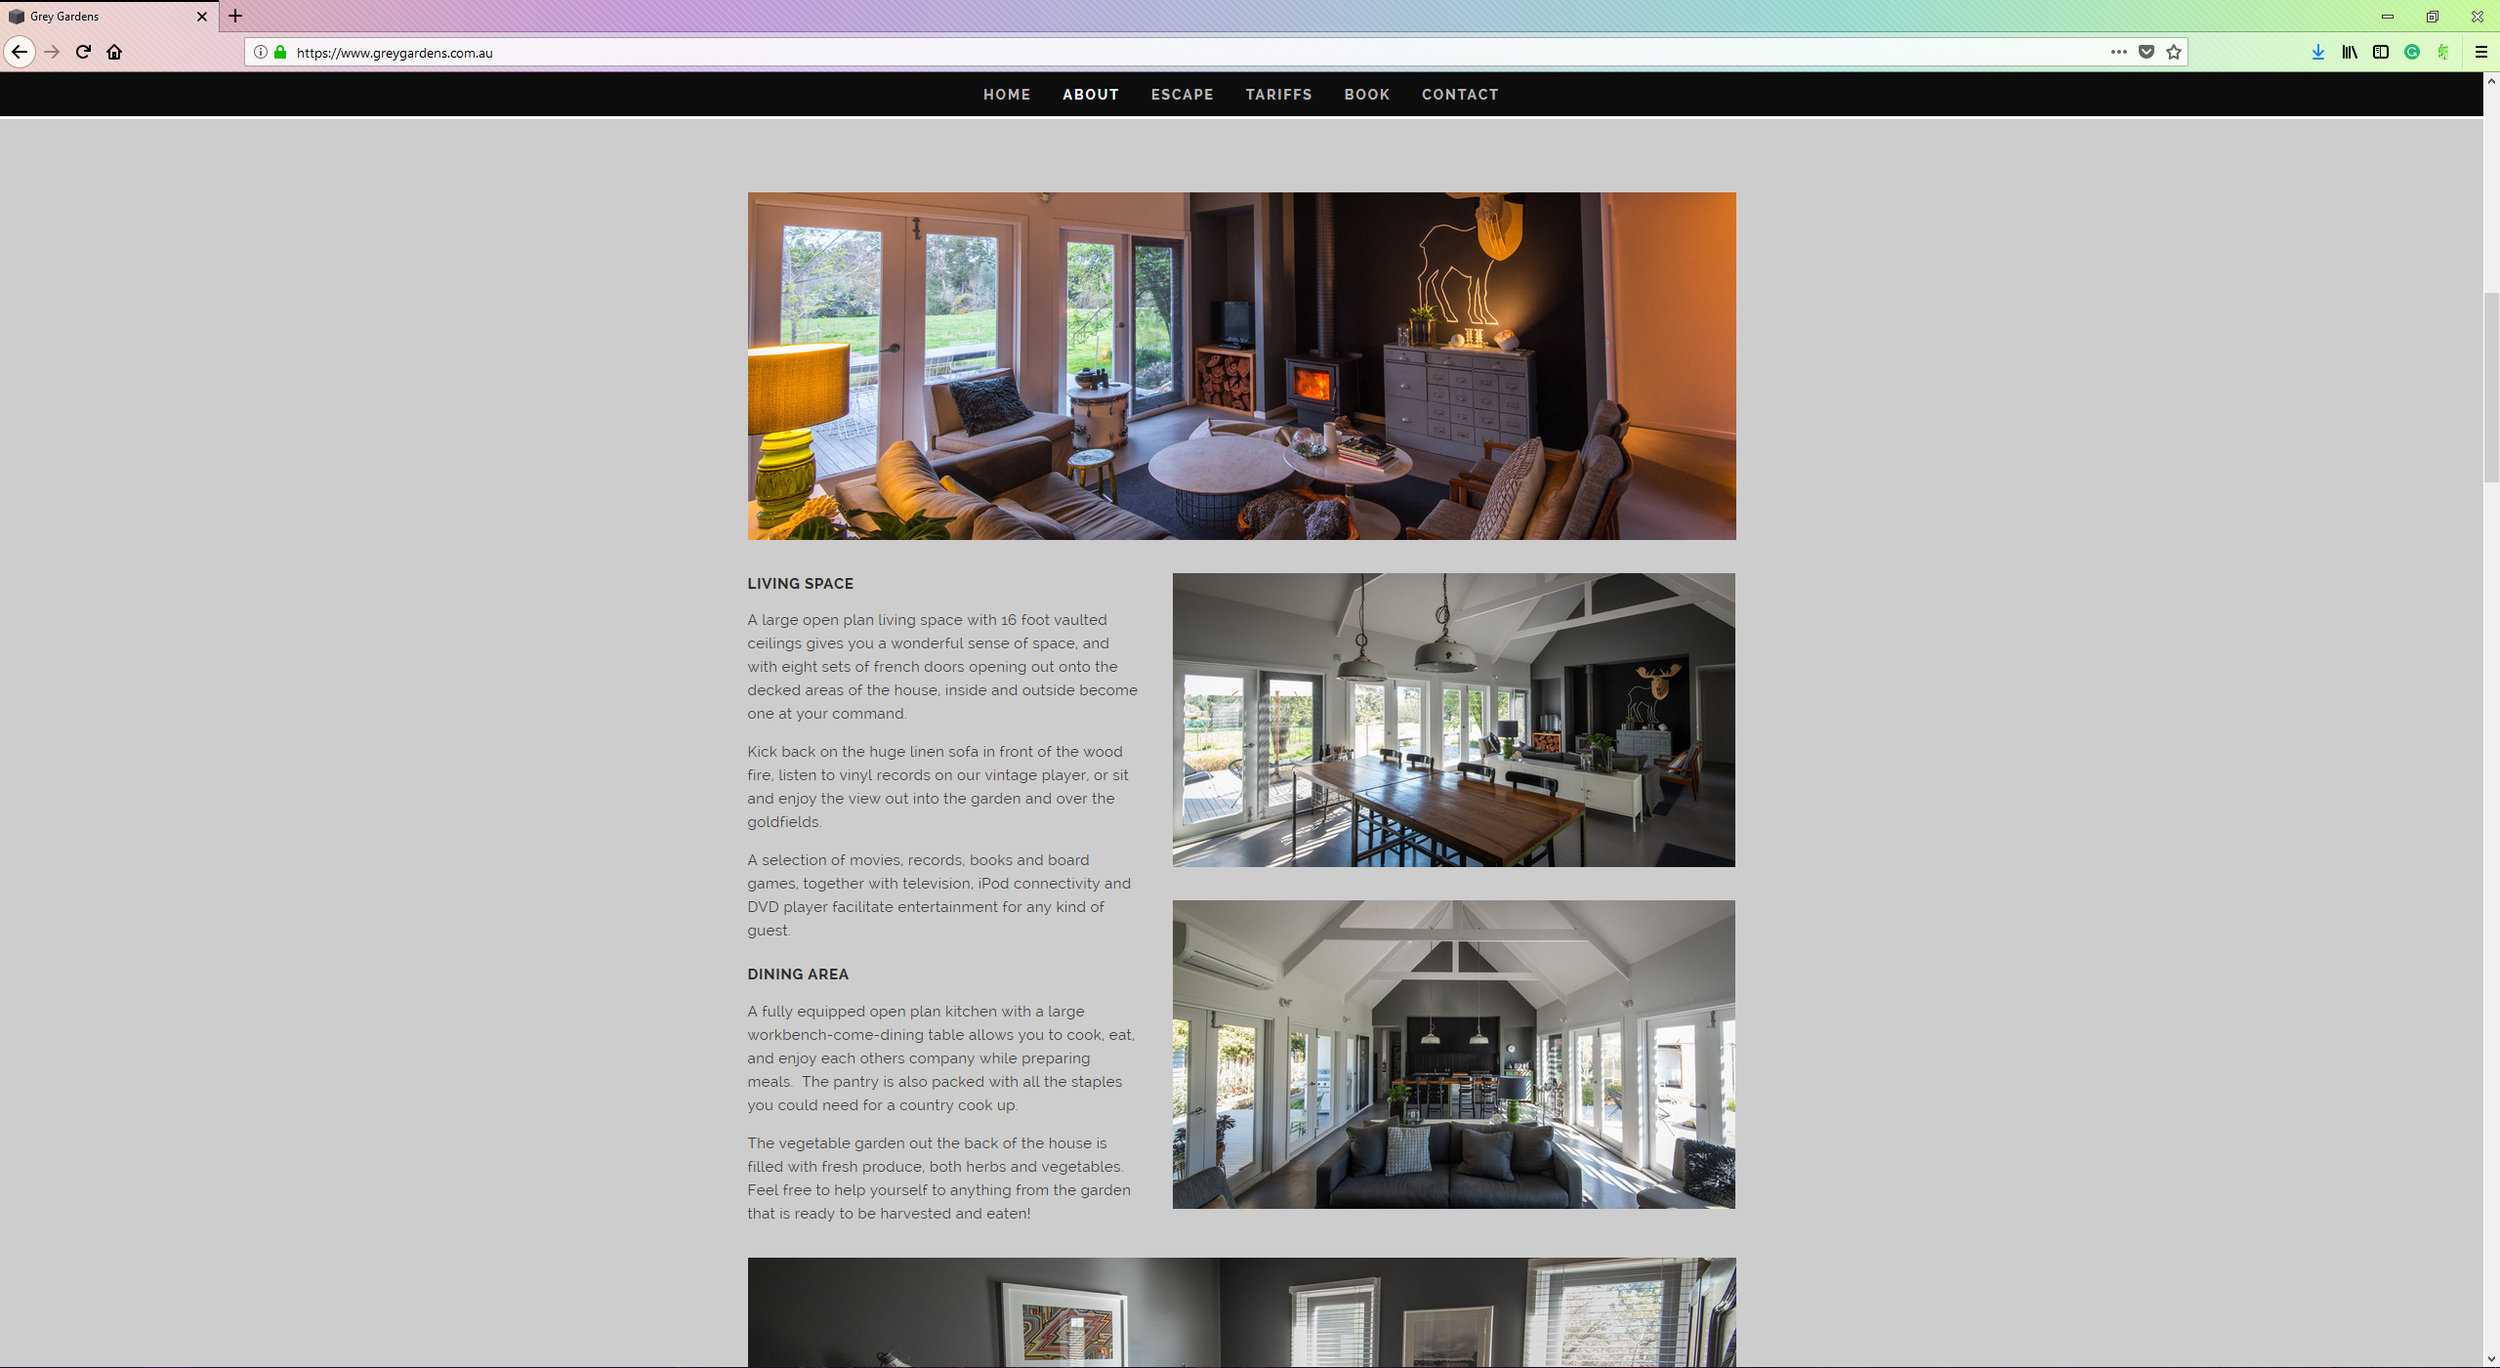 Grey Gardens is a stunning getaway property available to those seeking some inner-city style in a peaceful country setting. Runaway Graphics was approached to produce a website for Grey Gardens to help market it against upcoming competitors in the region. This also involved a full day photo-shoot of the property to help the design and style apparent in every nook and cranny of this property to be seen in full light. The website, and full catalogue of images are viewable   here  .